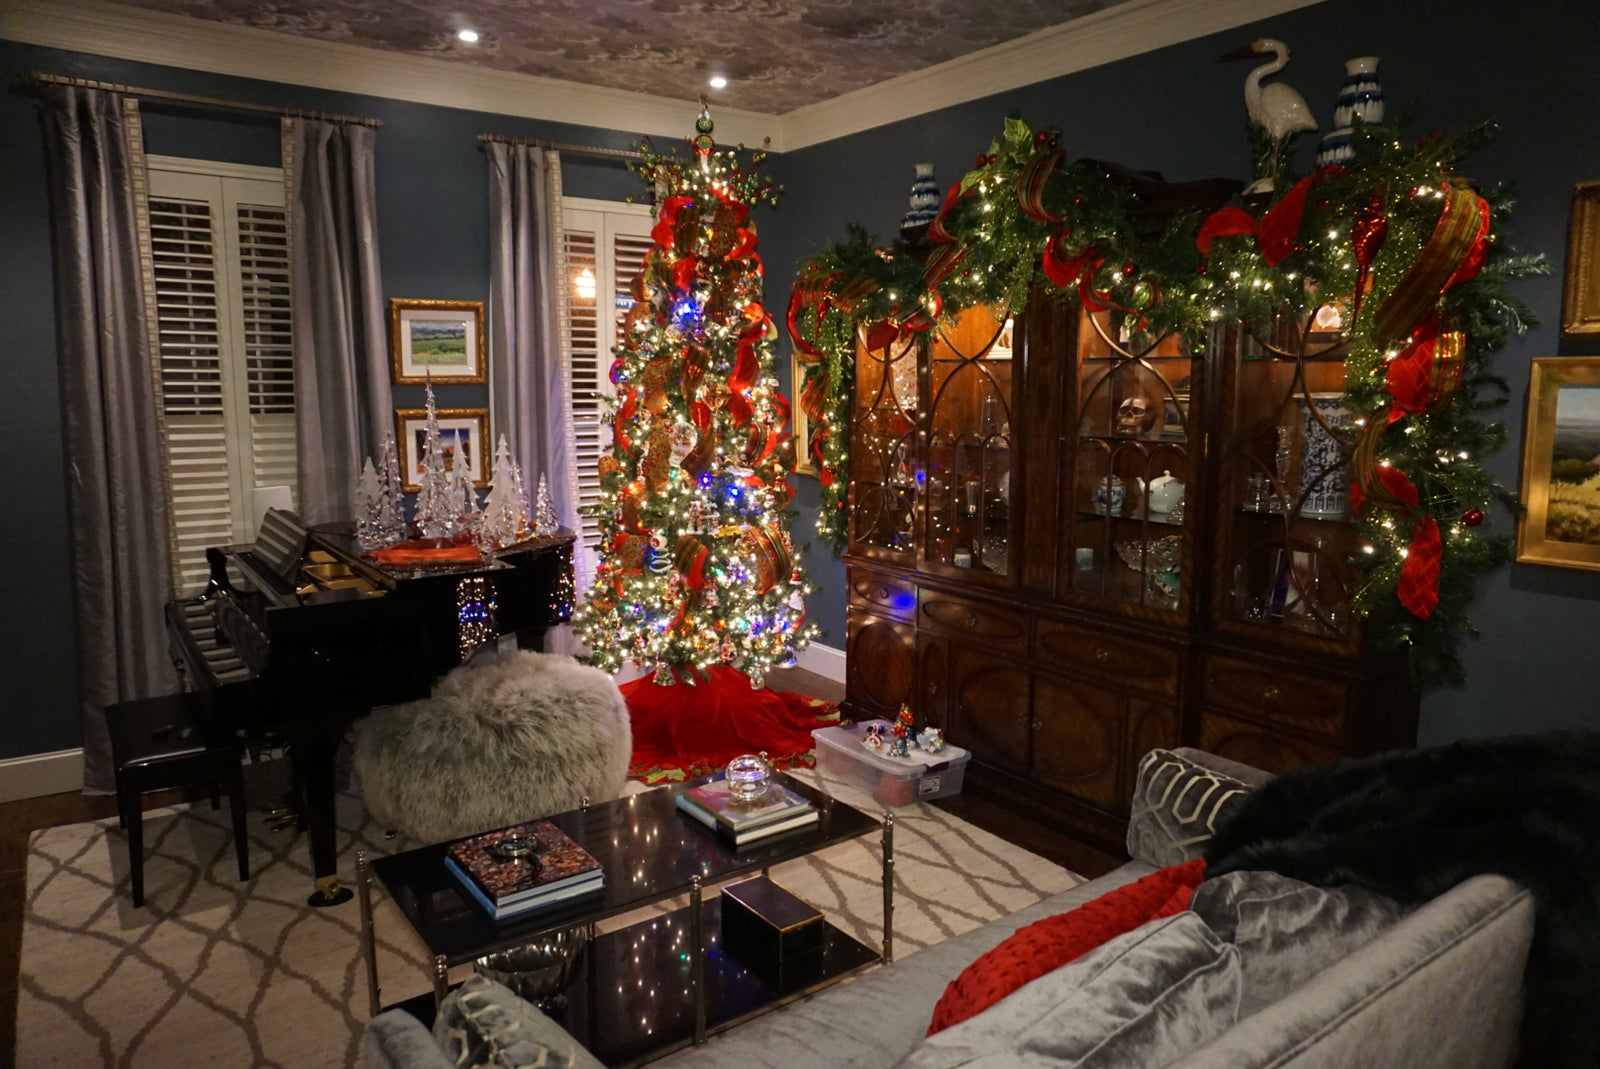 Holiday Decorating Service per Hour (Please Call for Pricing)